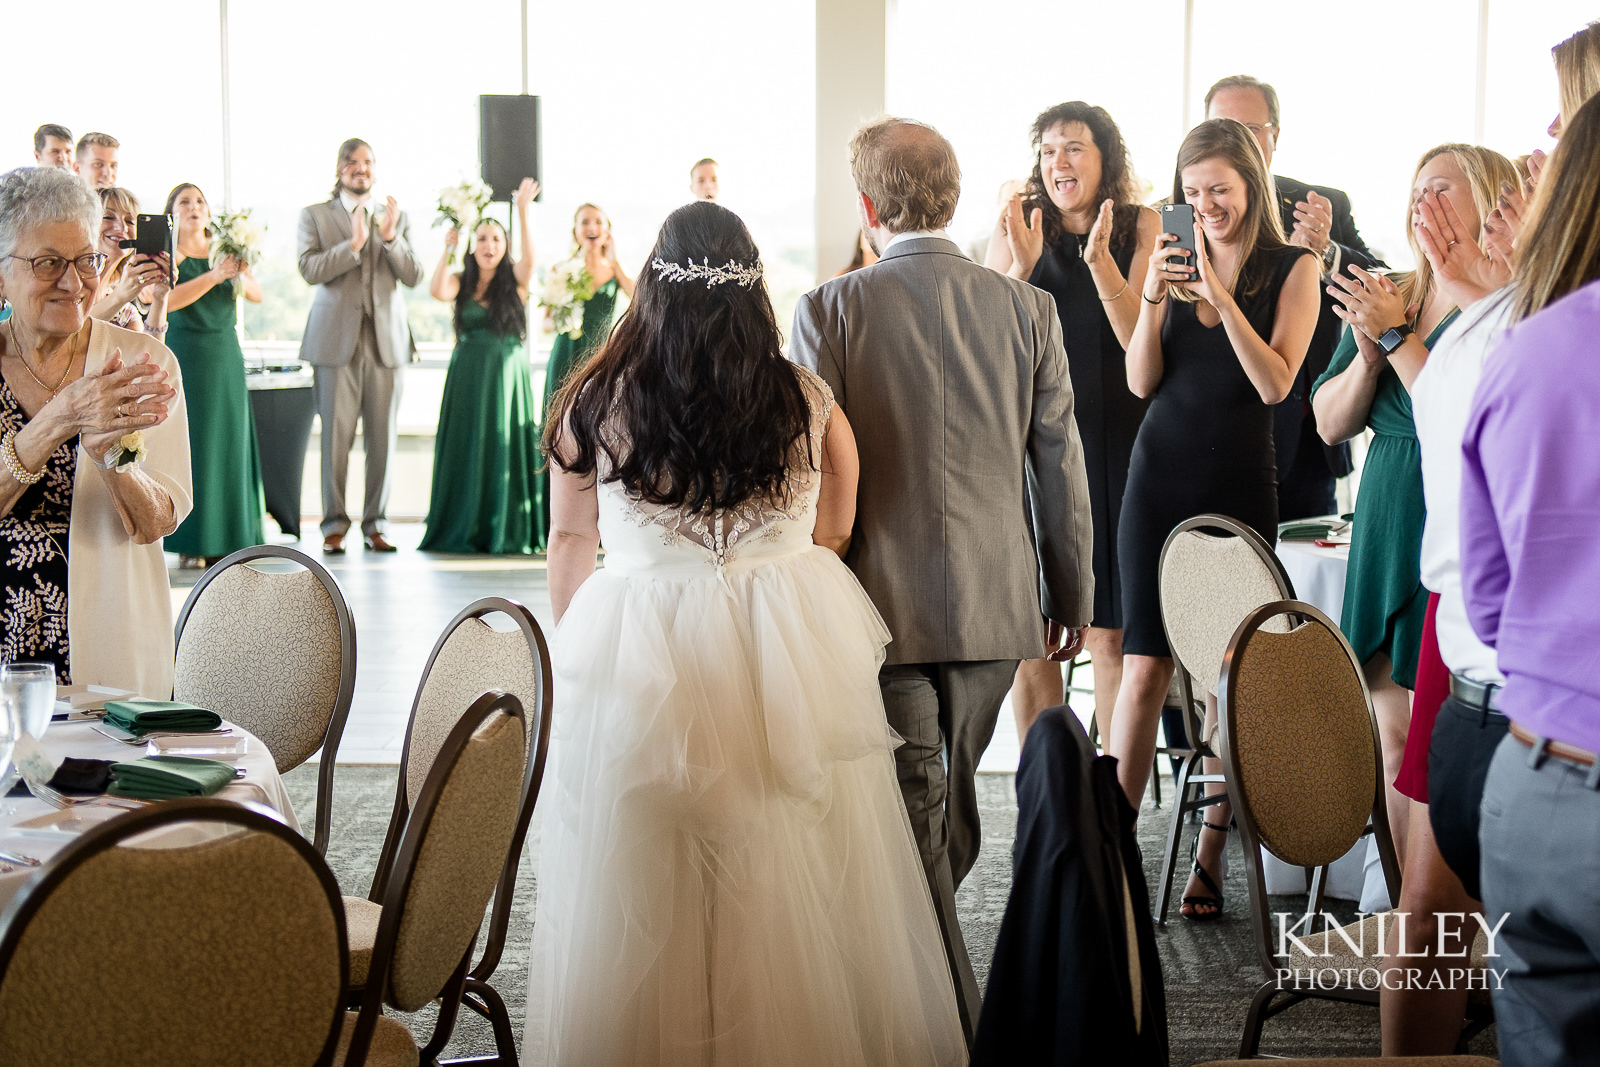 095 - Rochester NY wedding pictures - Strathallan Hotel wedding reception - XT2B5631.jpg